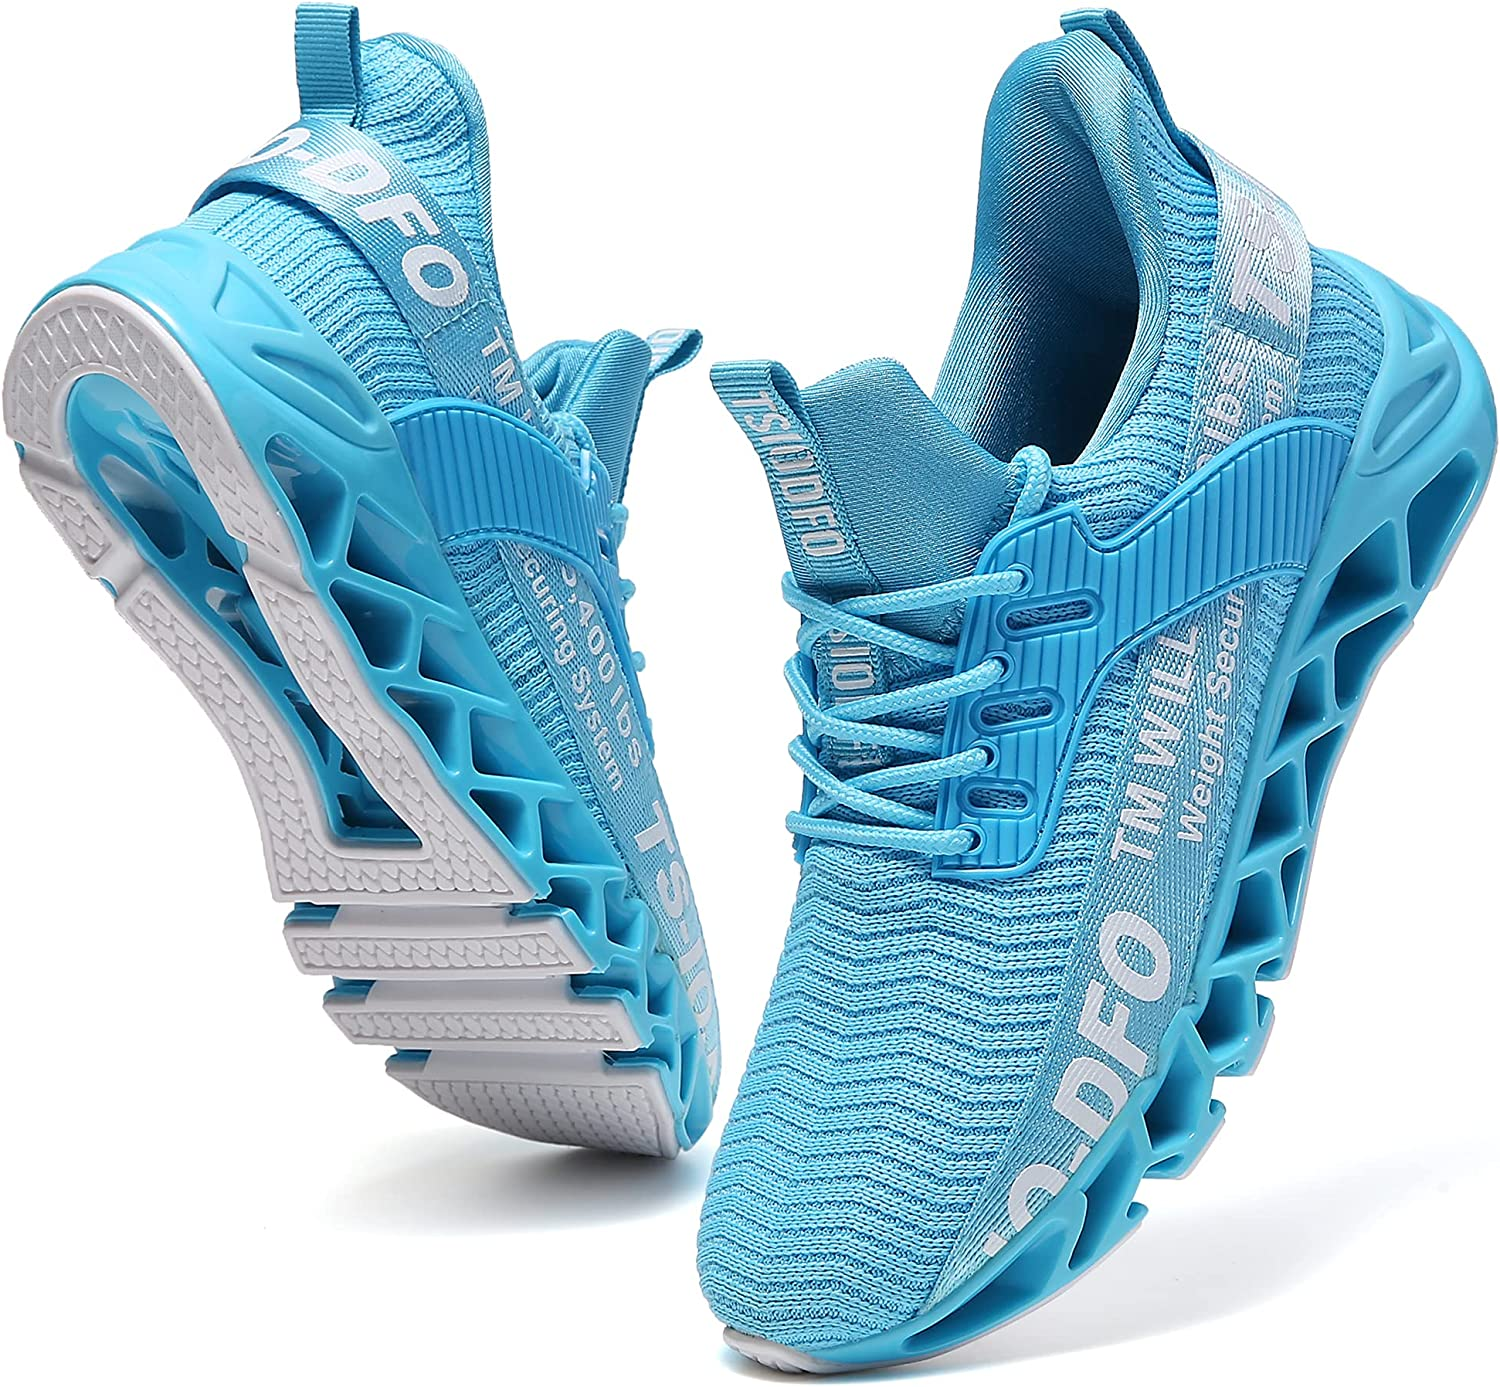 CELEBHTTWomen Outlet ☆ Free Shipping Athleitc Max 57% OFF Shoes Running No Walking Tennis